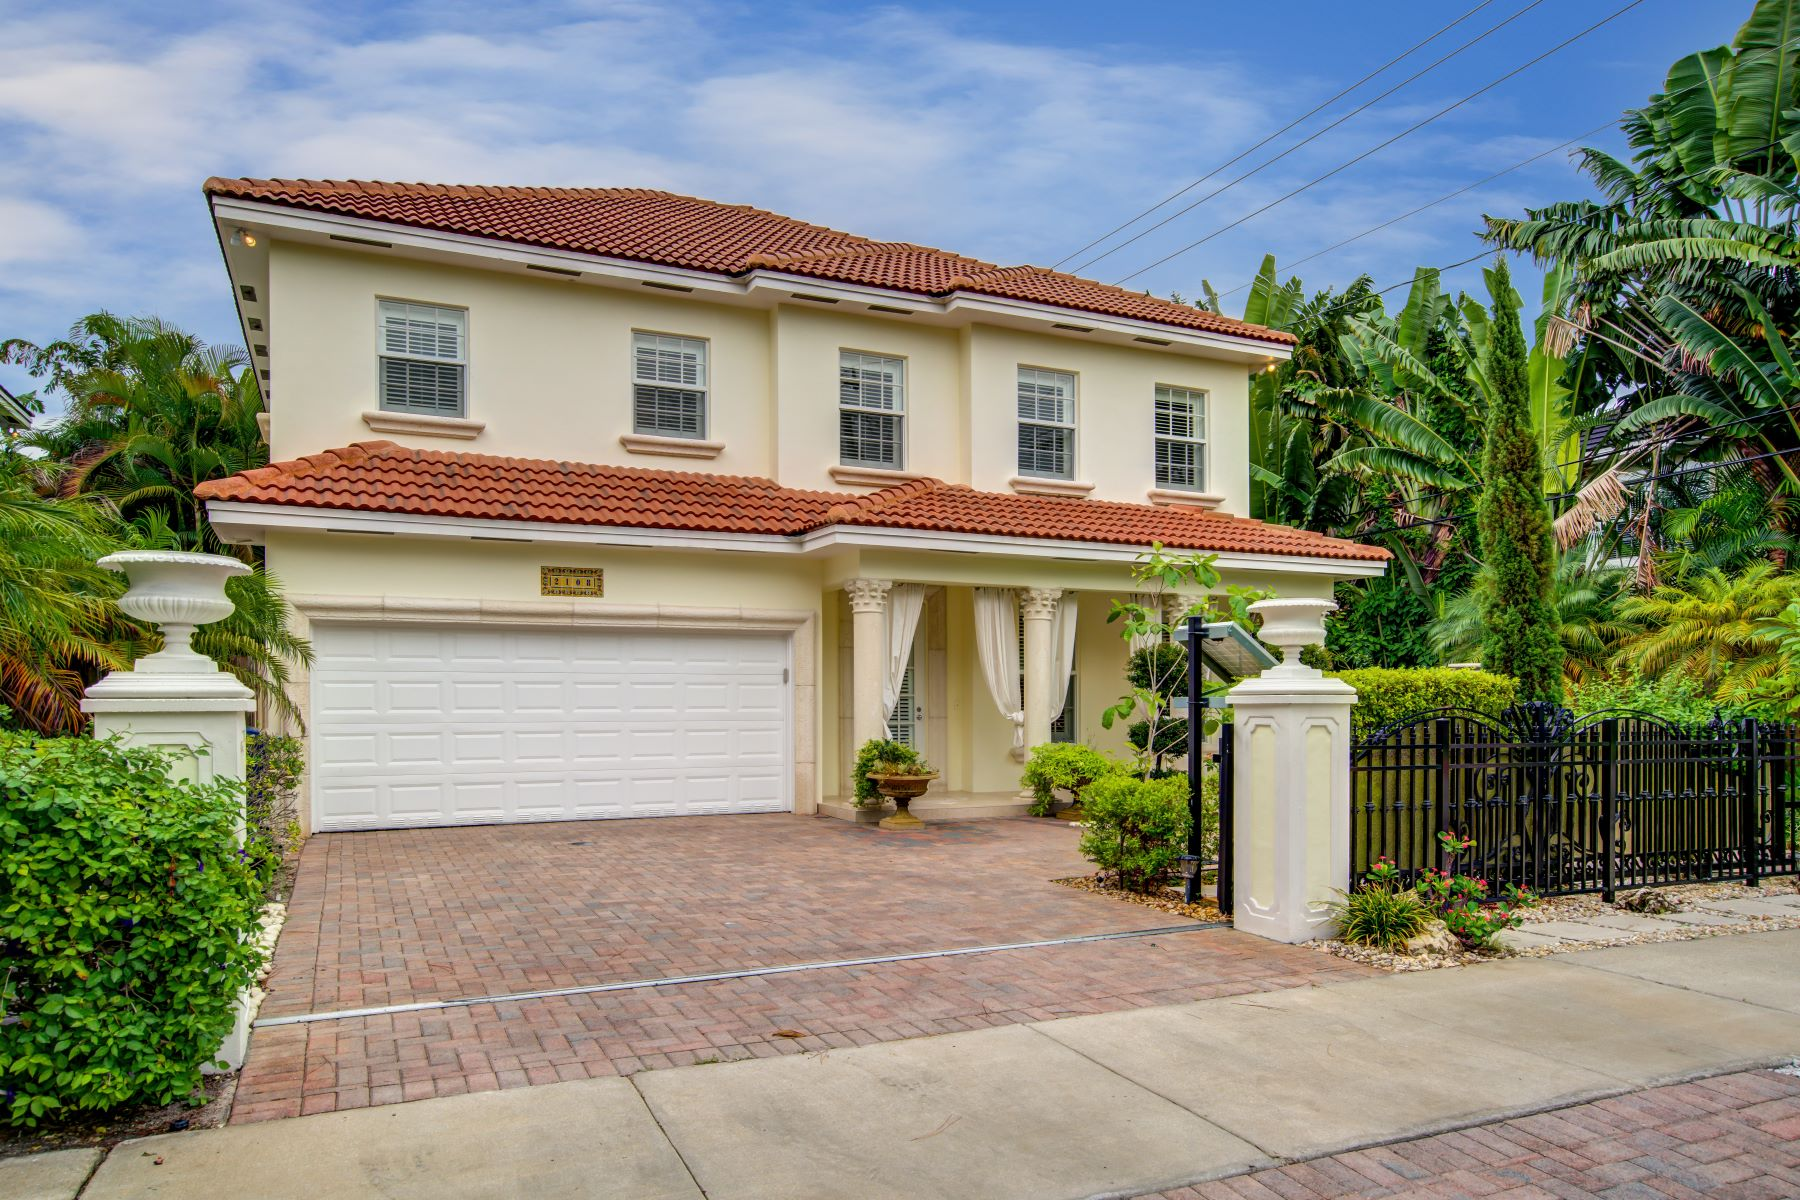 House for Sale at 2108 Ne 1st Ave Wilton Manors, Florida 33305 United States